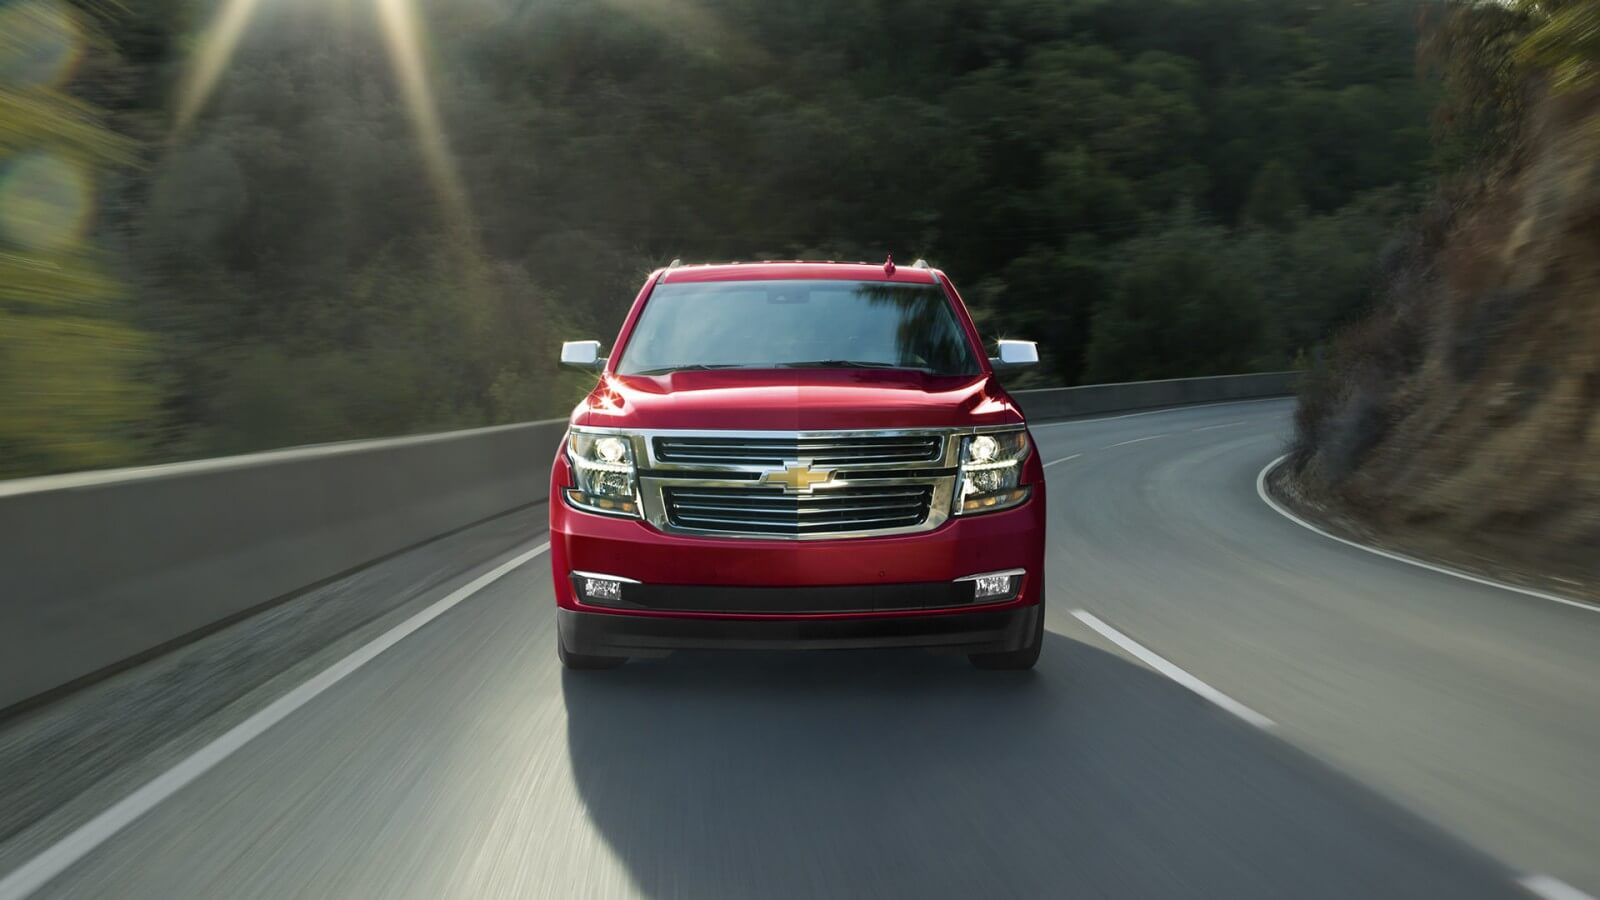 2017 Chevrolet Tahoe front view red exterior